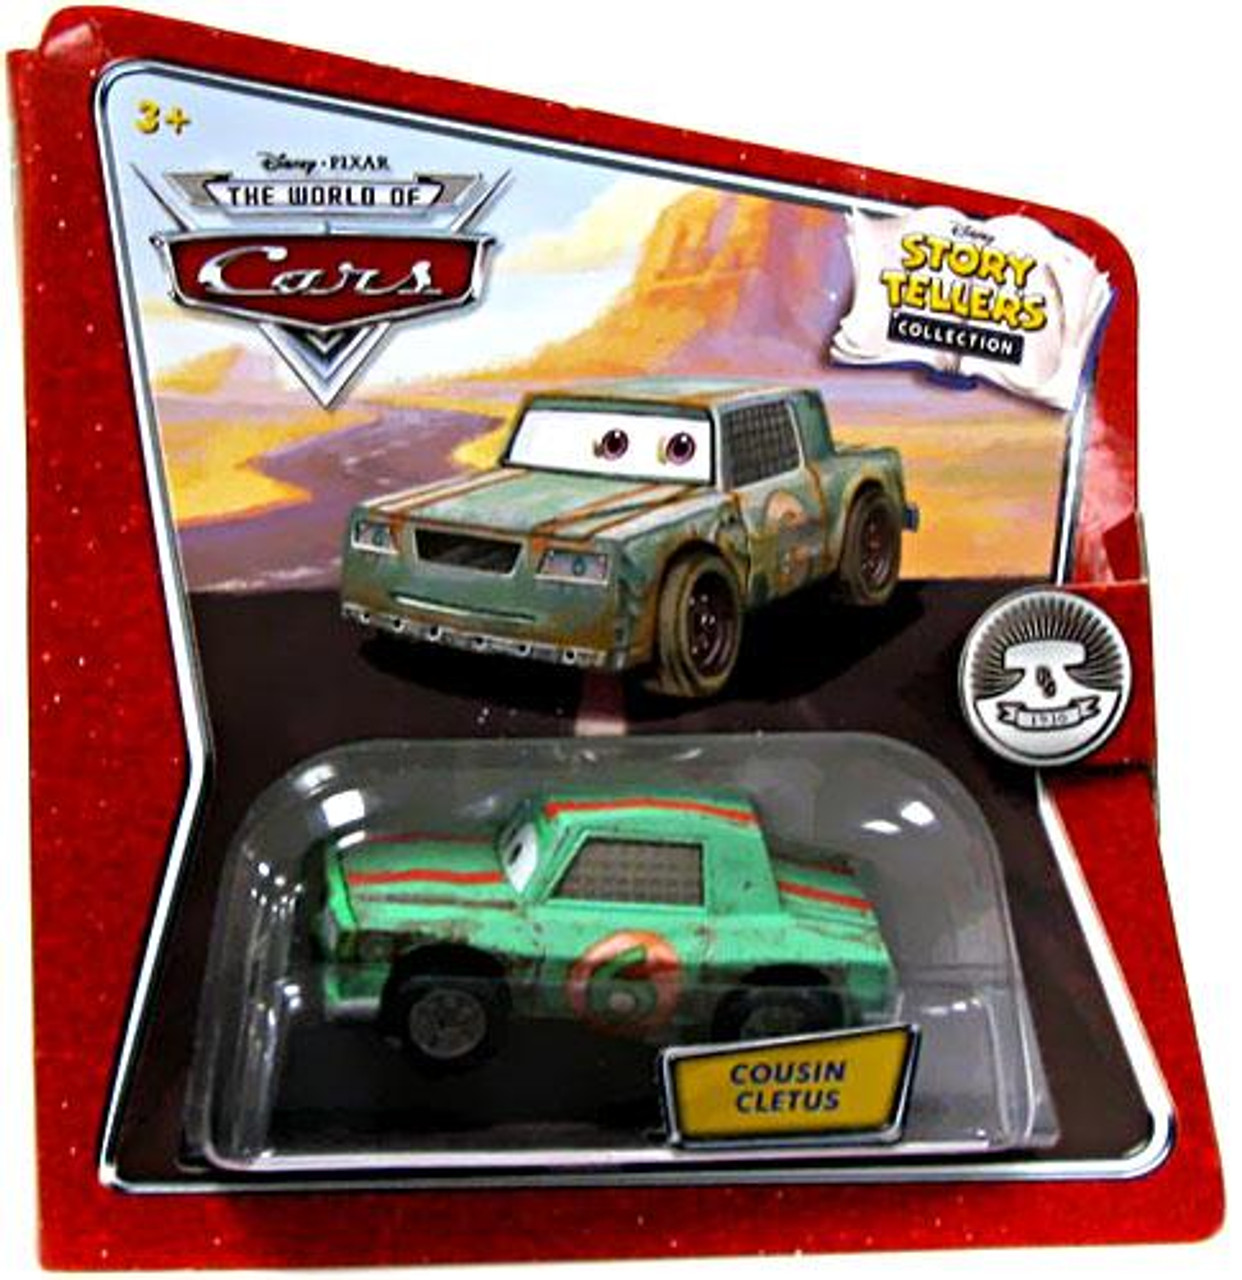 Disney Cars The World of Cars Story Tellers Cousin Cletus Diecast Car